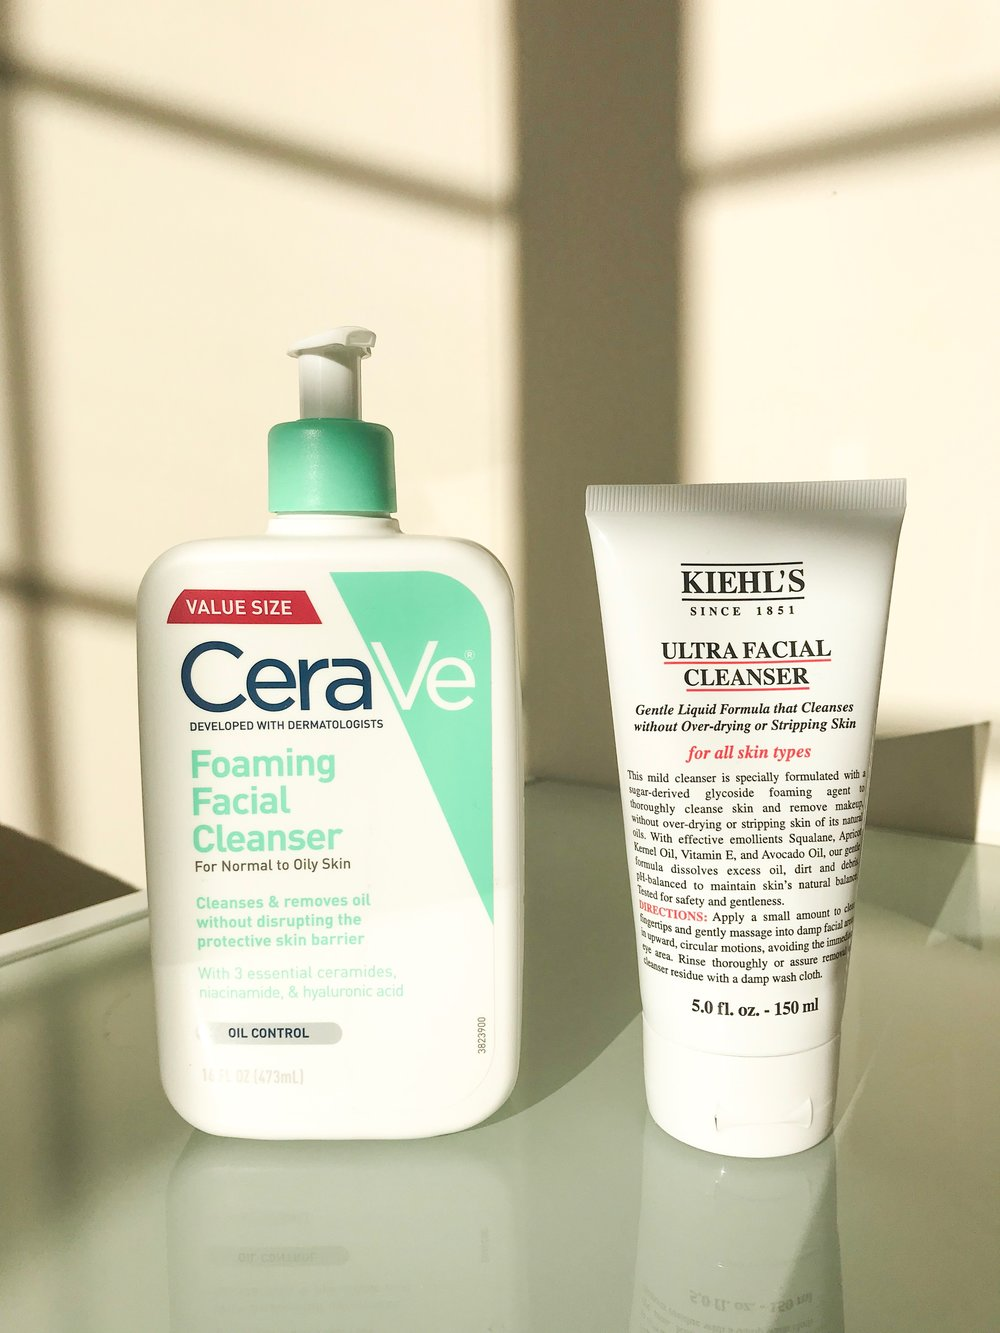 CeraVe Foaming Facial Cleanser - $13.99  vs    Kiehl's Ultra Facial Cleanser - $20.00